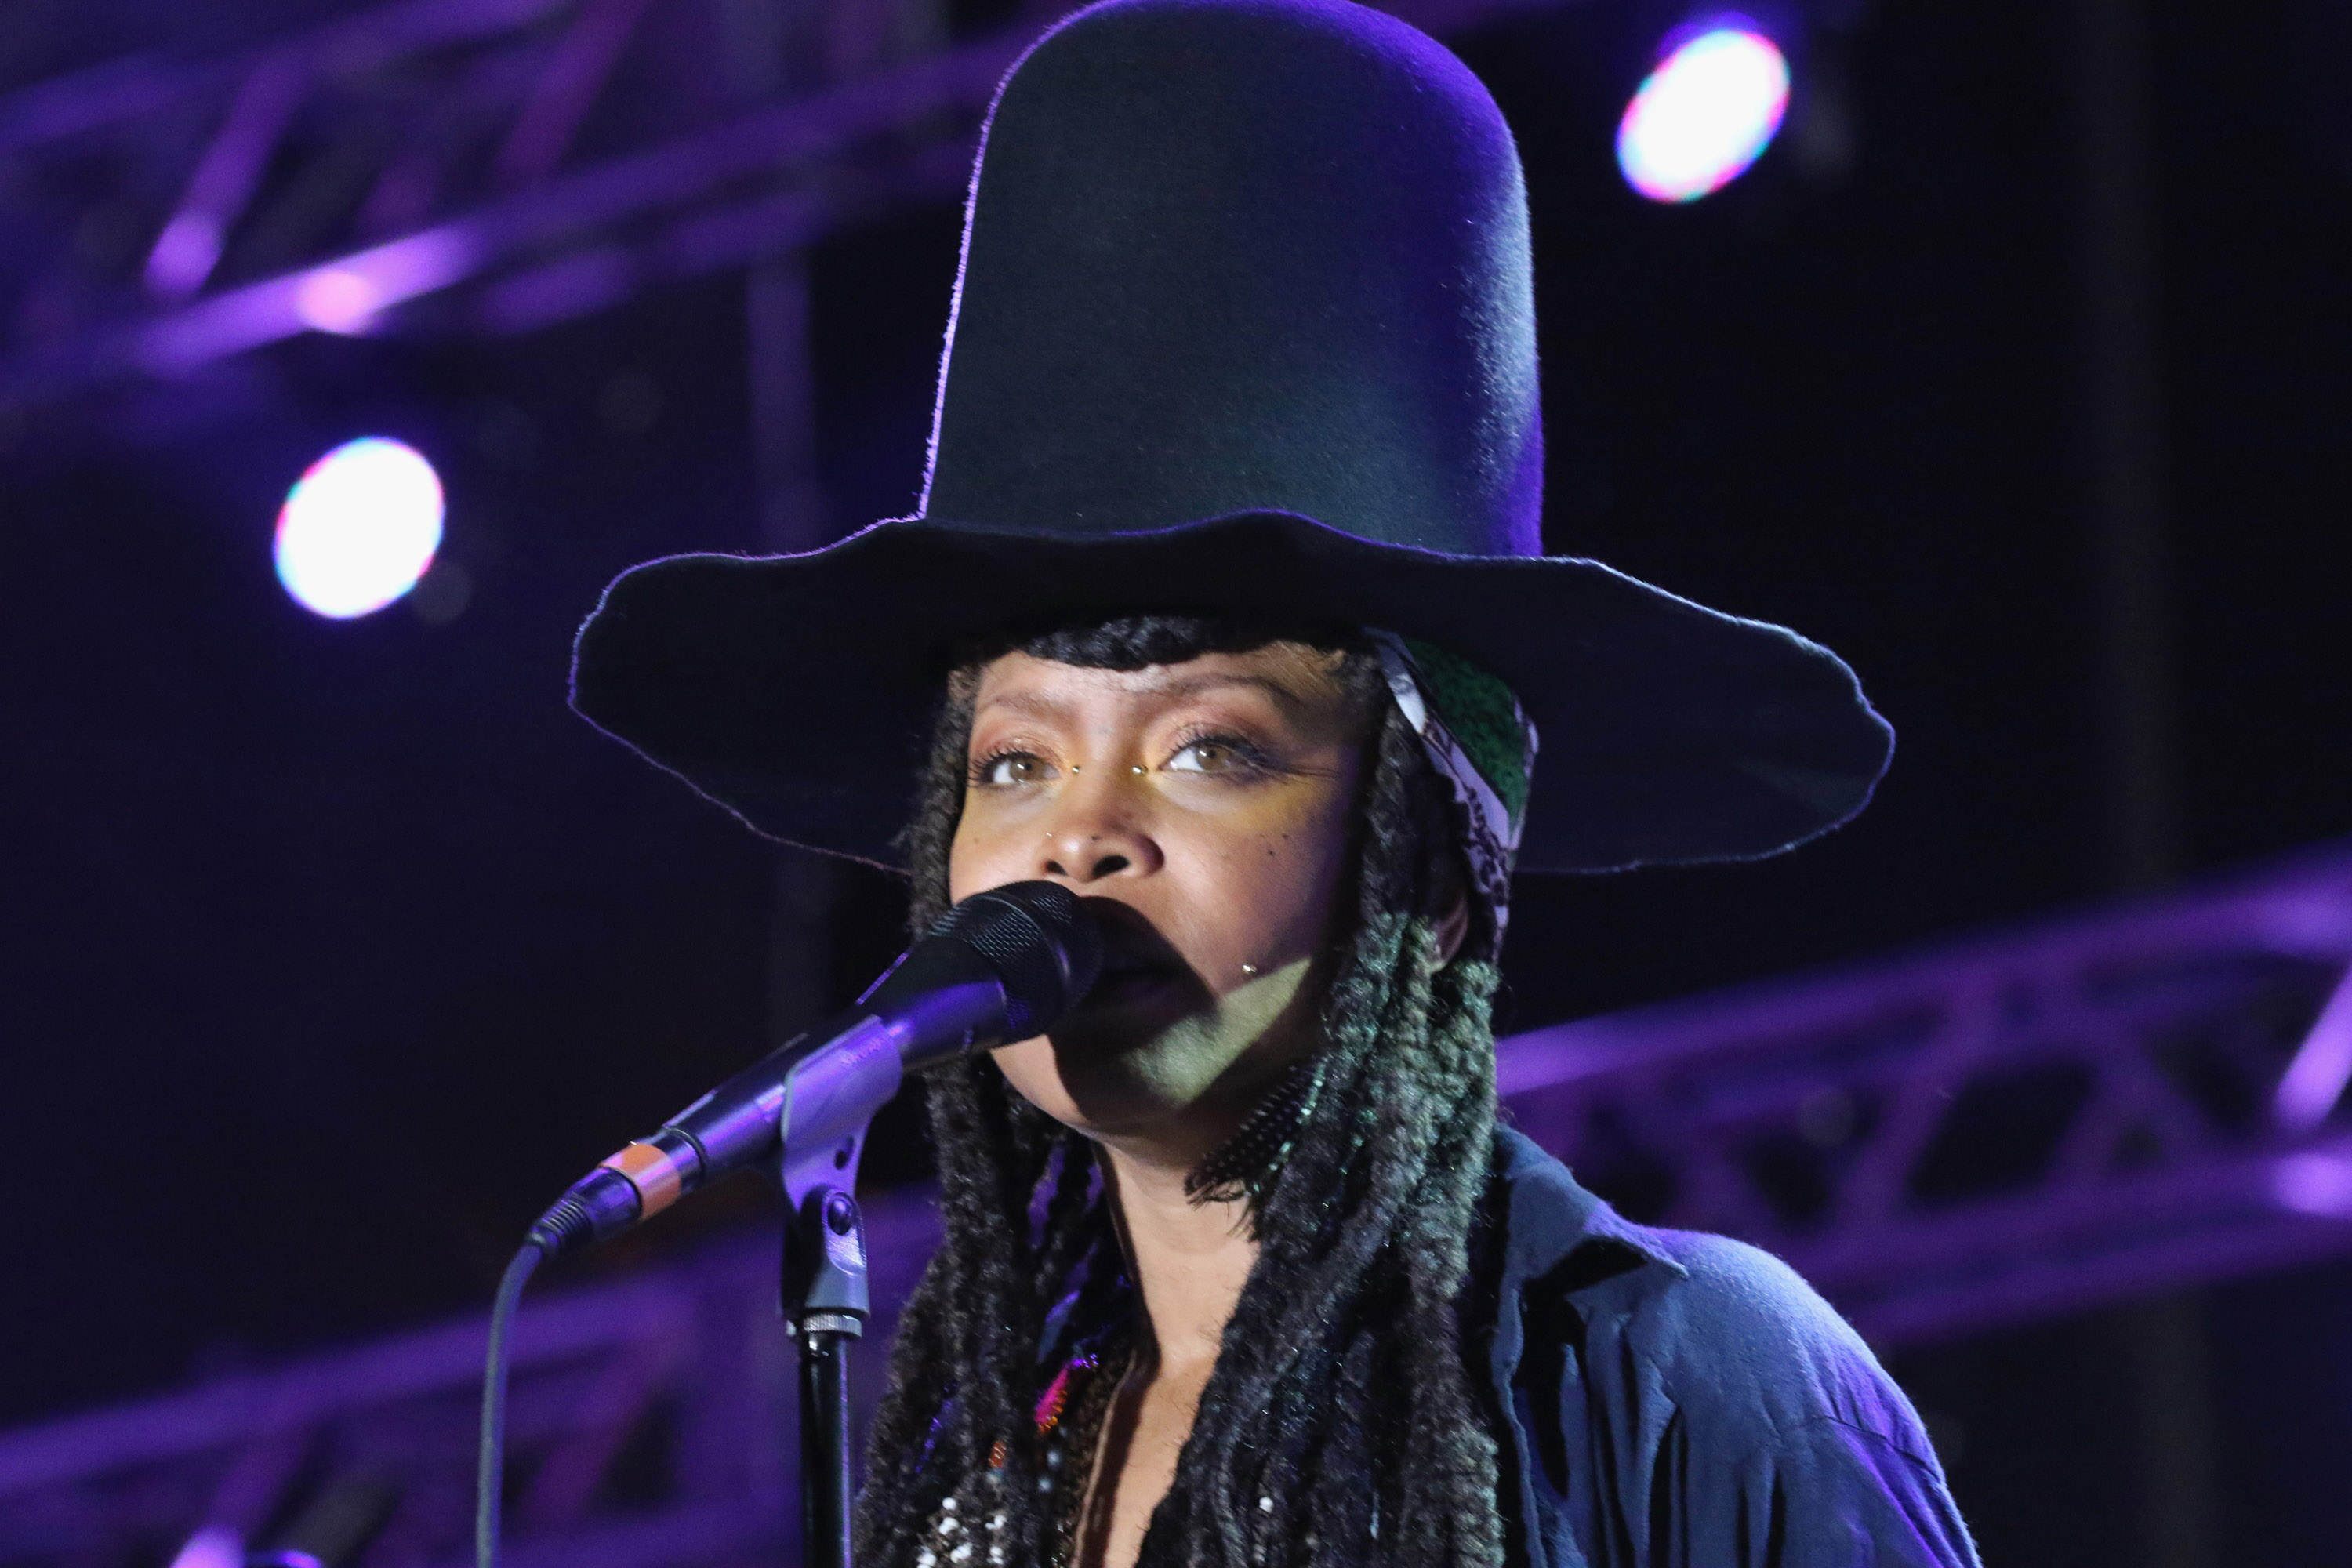 GettyImages 467314948 Erykah Badu Sparks Outrage With Victim Blaming Twitter Rant